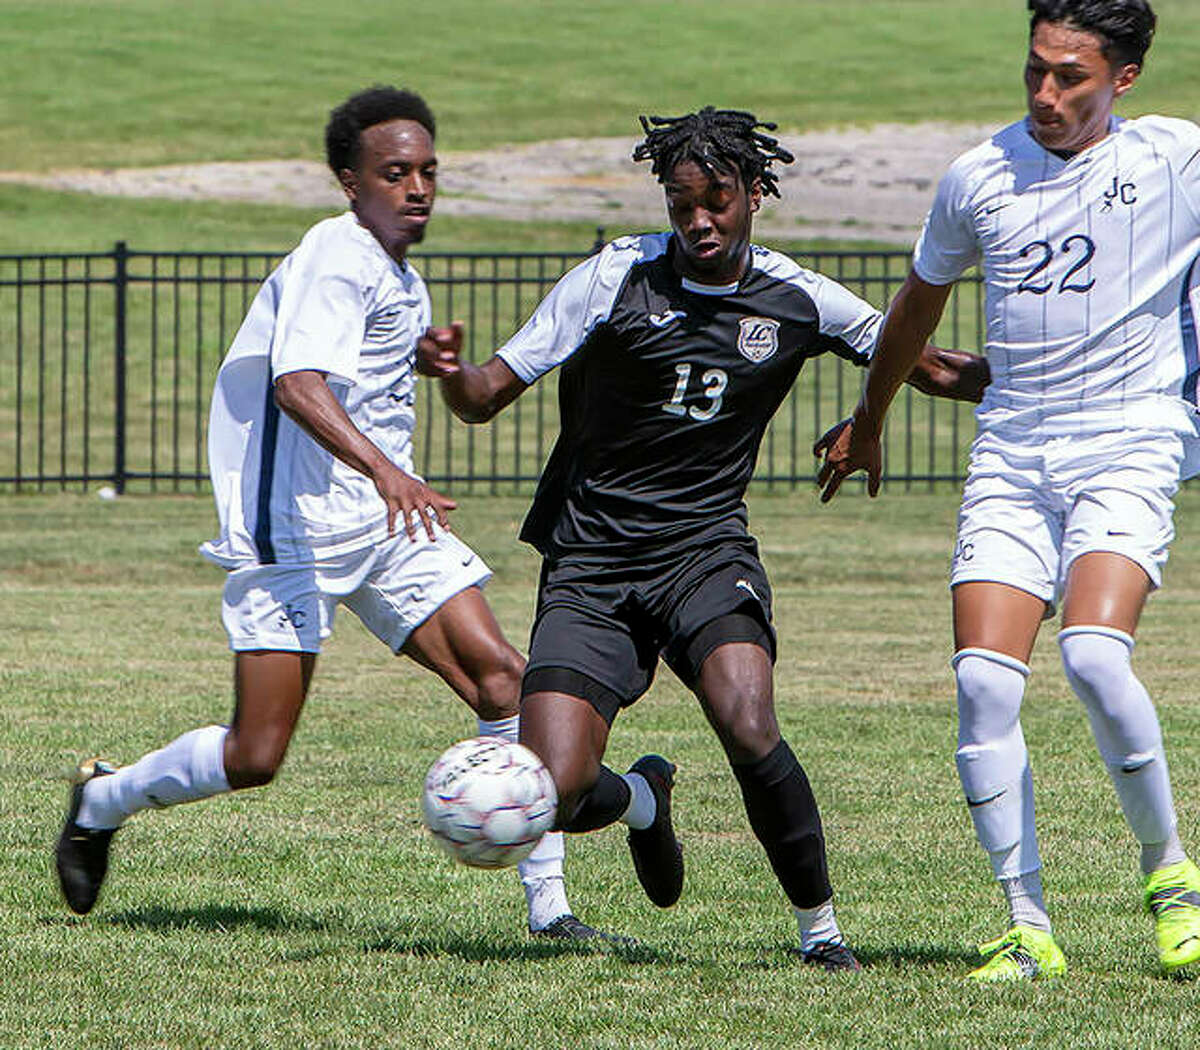 LCCC Ashley Martin, center, carries the ball between a pair of defenders Sunday against Johnson city. On Wednesday, LCCC fell at Mineral Area College 4-3.